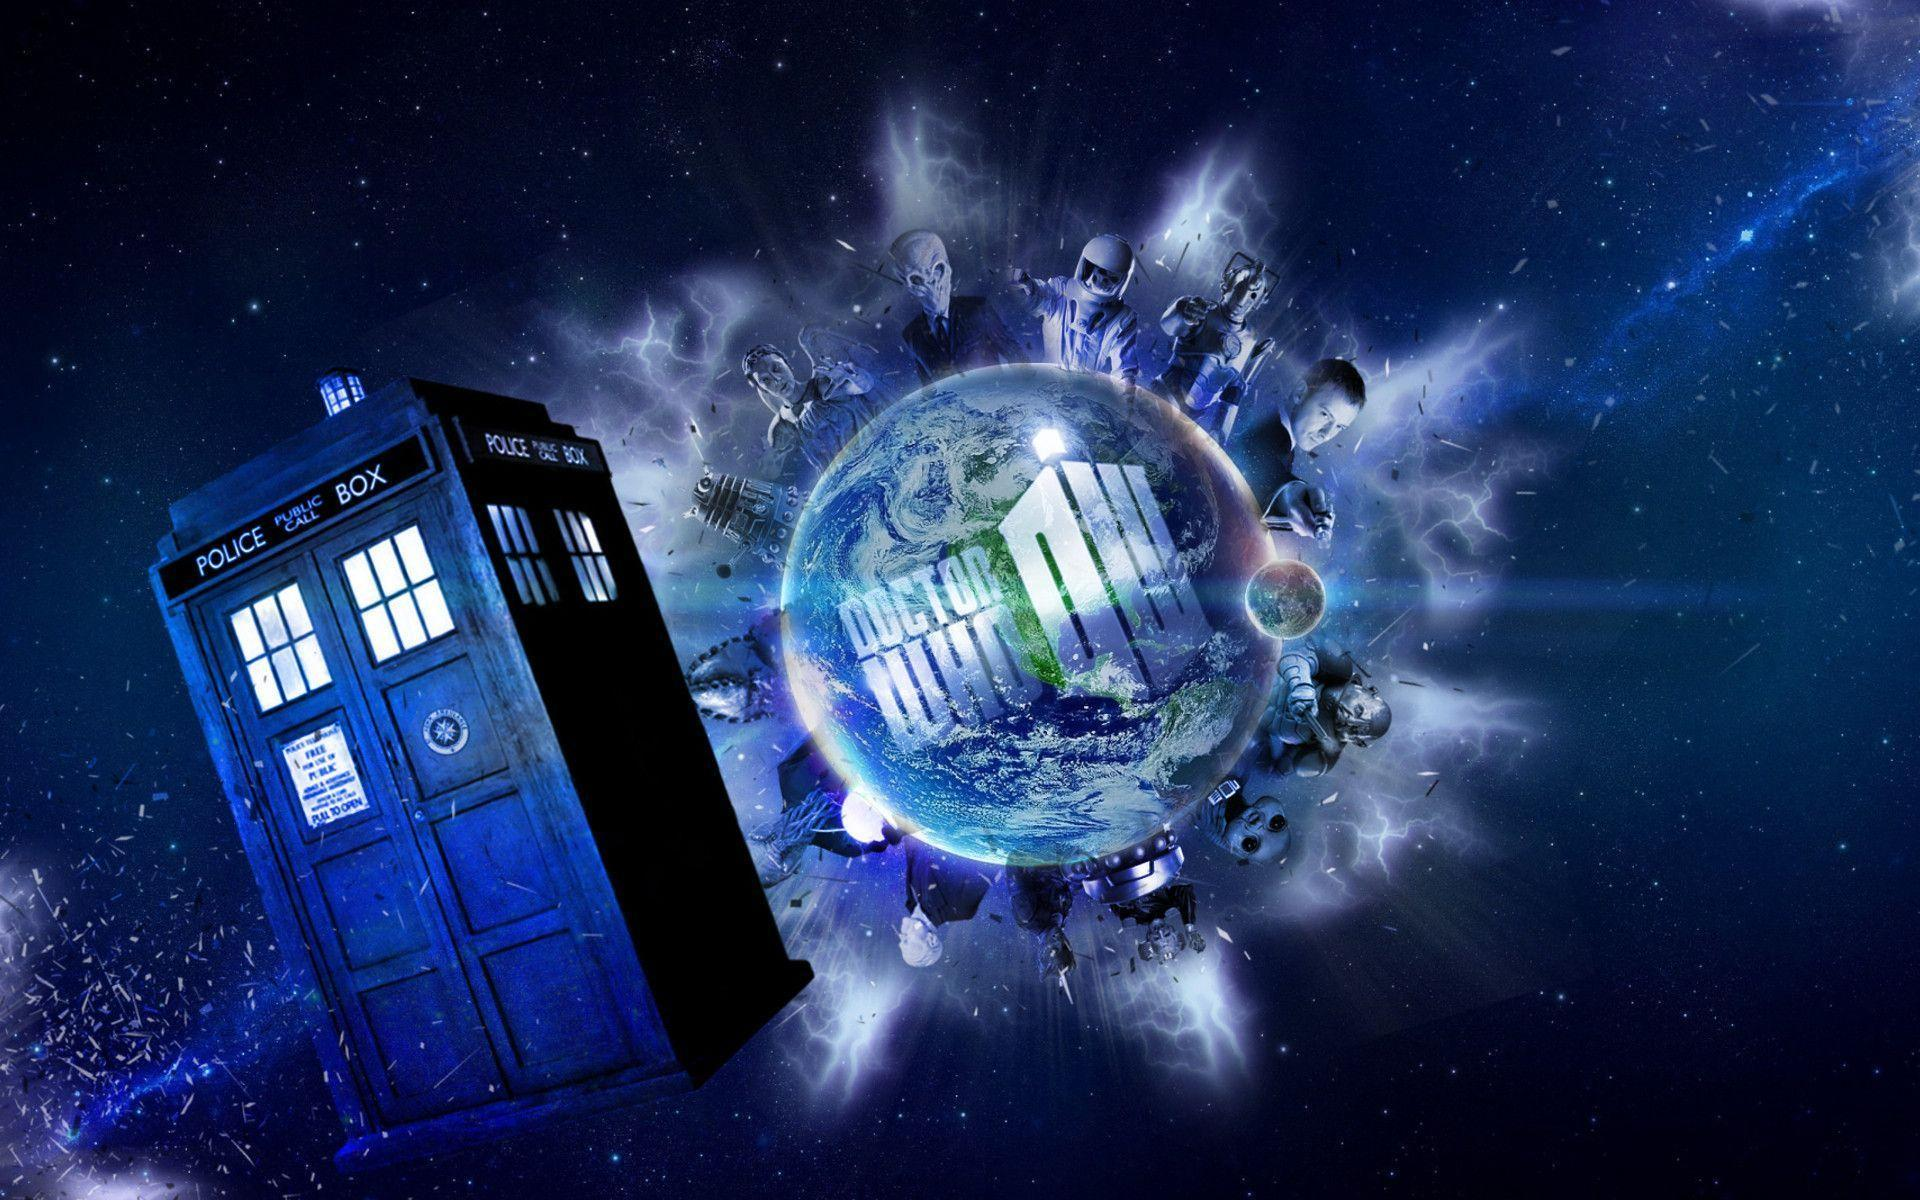 Dr Who Wallpapers Free - Wallpaper Cave